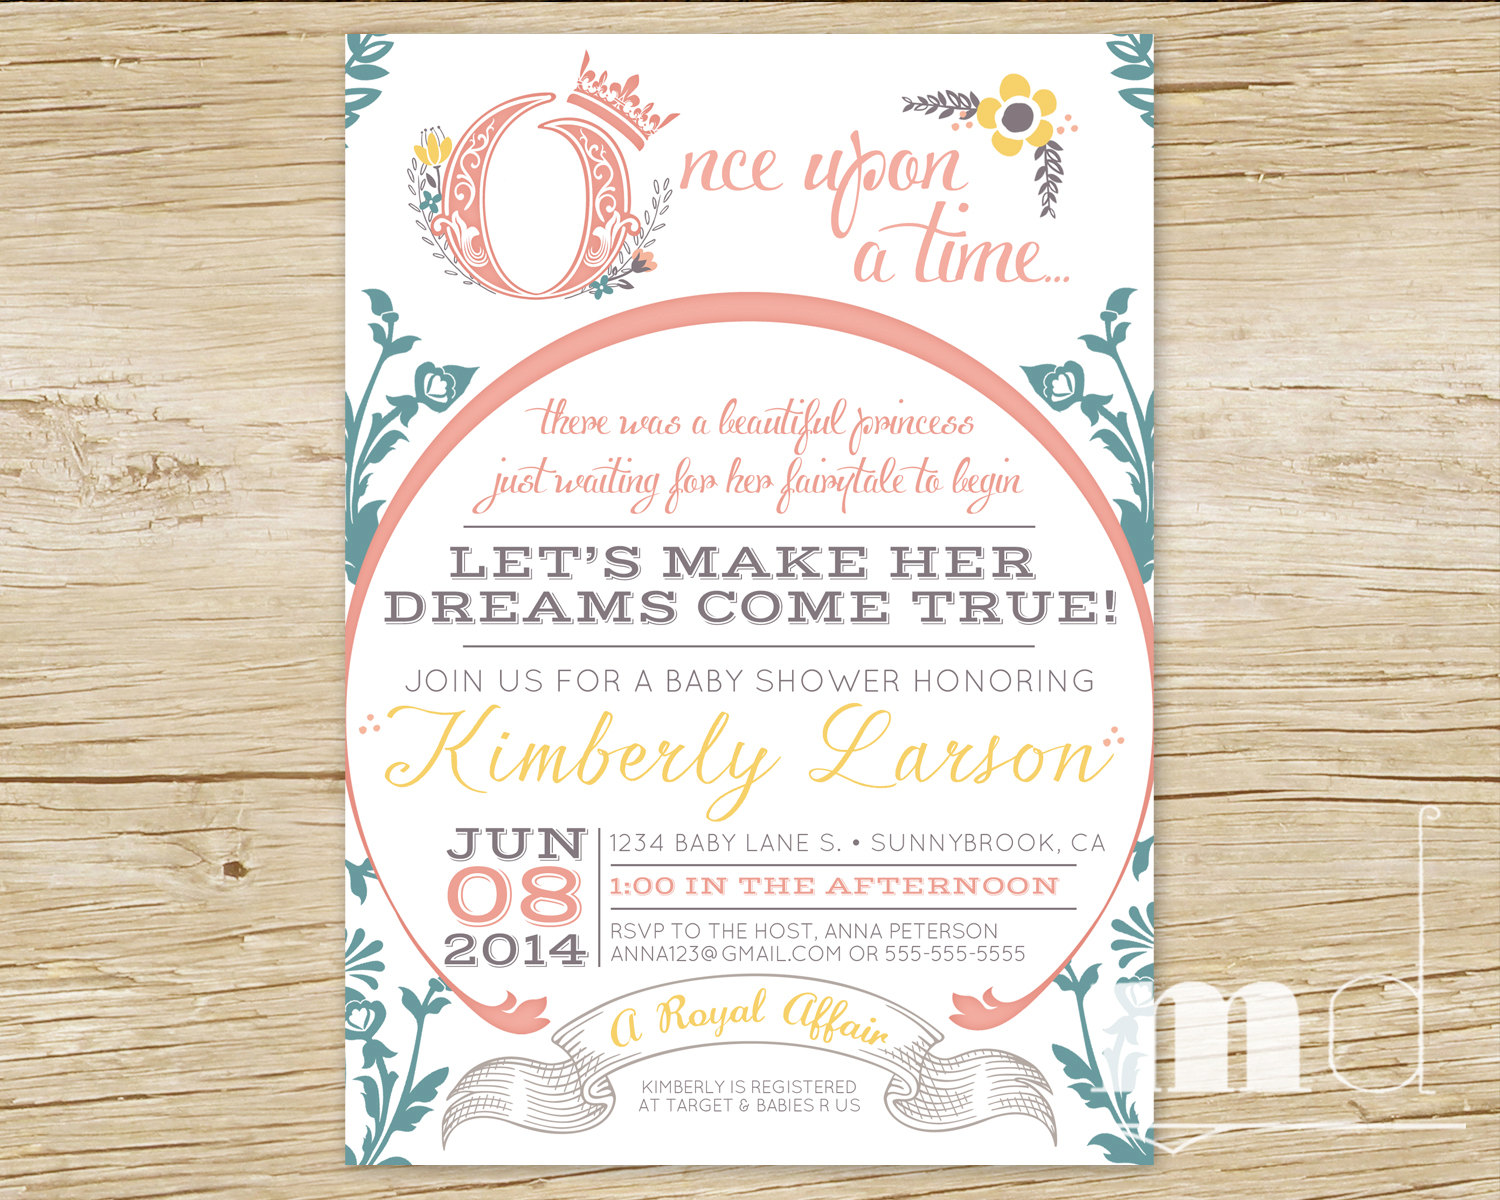 Full Size of Baby Shower:baby Boy Shower Ideas Free Printable Baby Shower Games Free Baby Shower Ideas Unique Baby Shower Decorations Girl Baby Shower Decorations Baby Shower Decorations For Girls Baby Girl Themed Showers Nautical Baby Shower Invitations For Boys